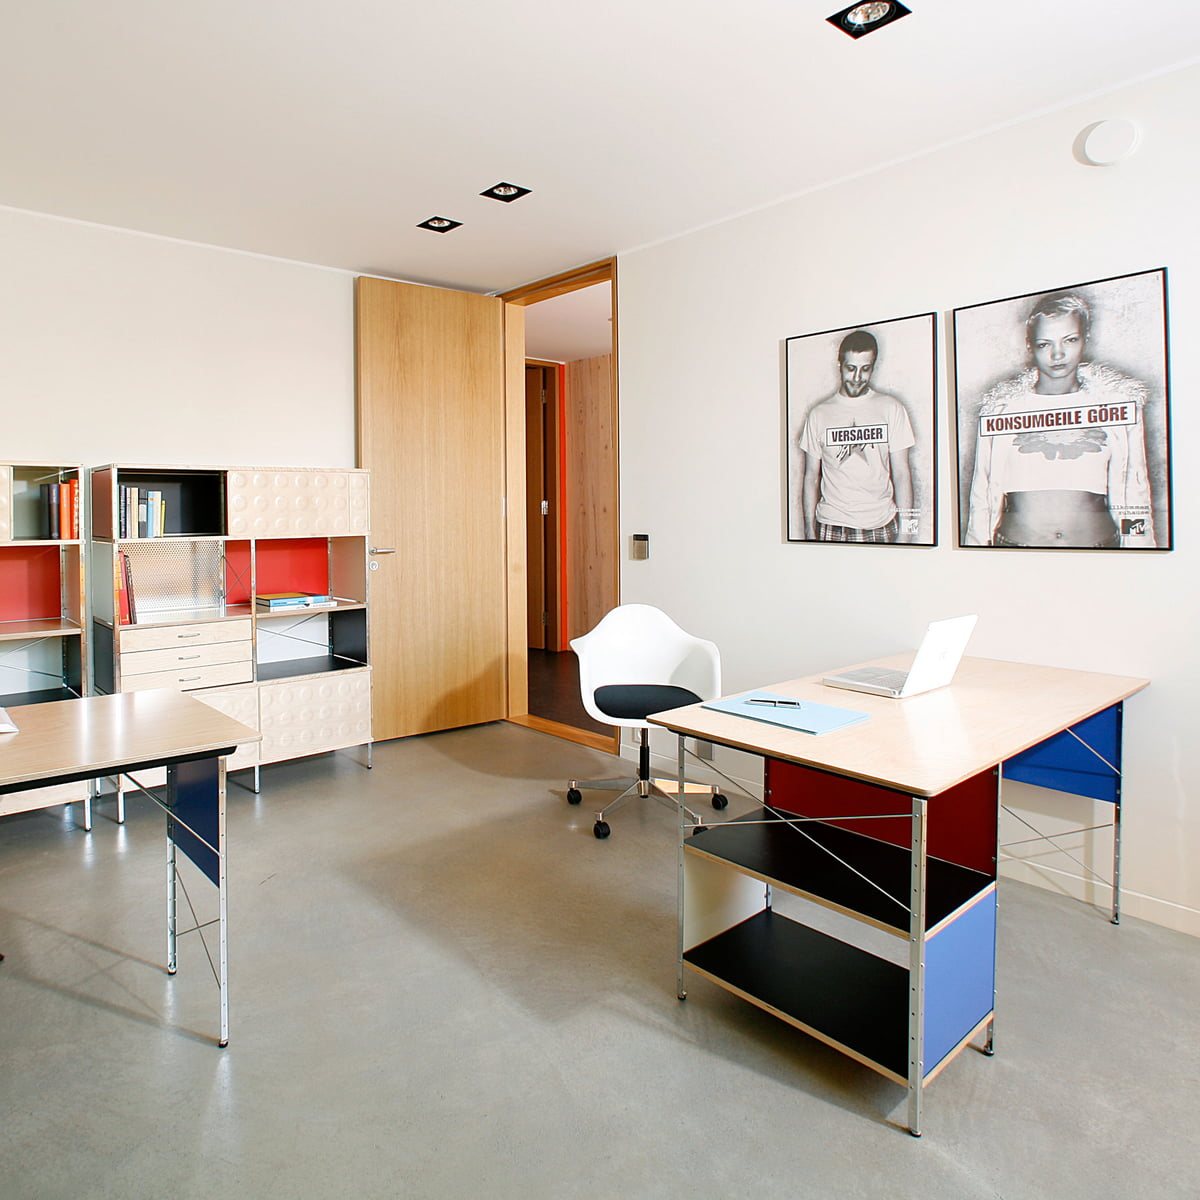 Eames Desk and Storage Unit featured in an office setting with other furniture